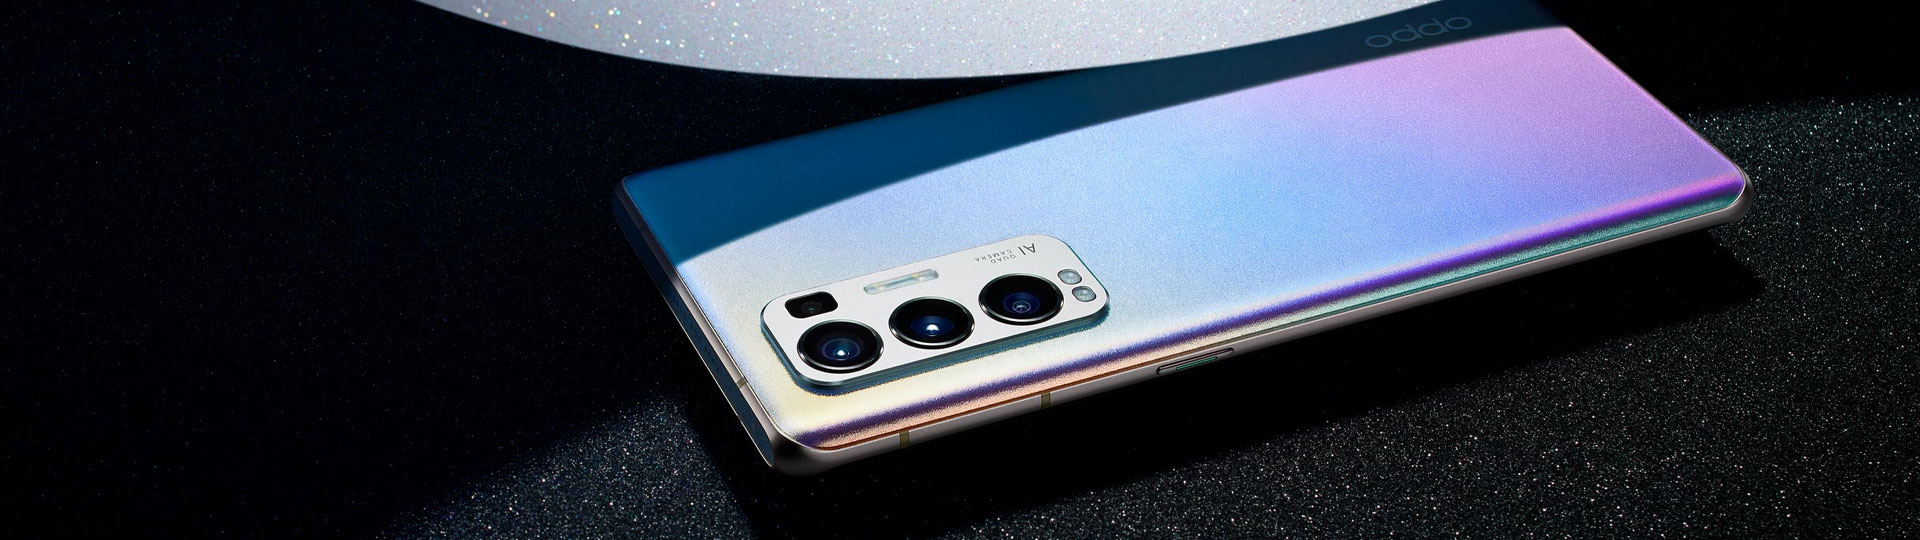 Oppo Find X3 Neo: tanto equilibrio